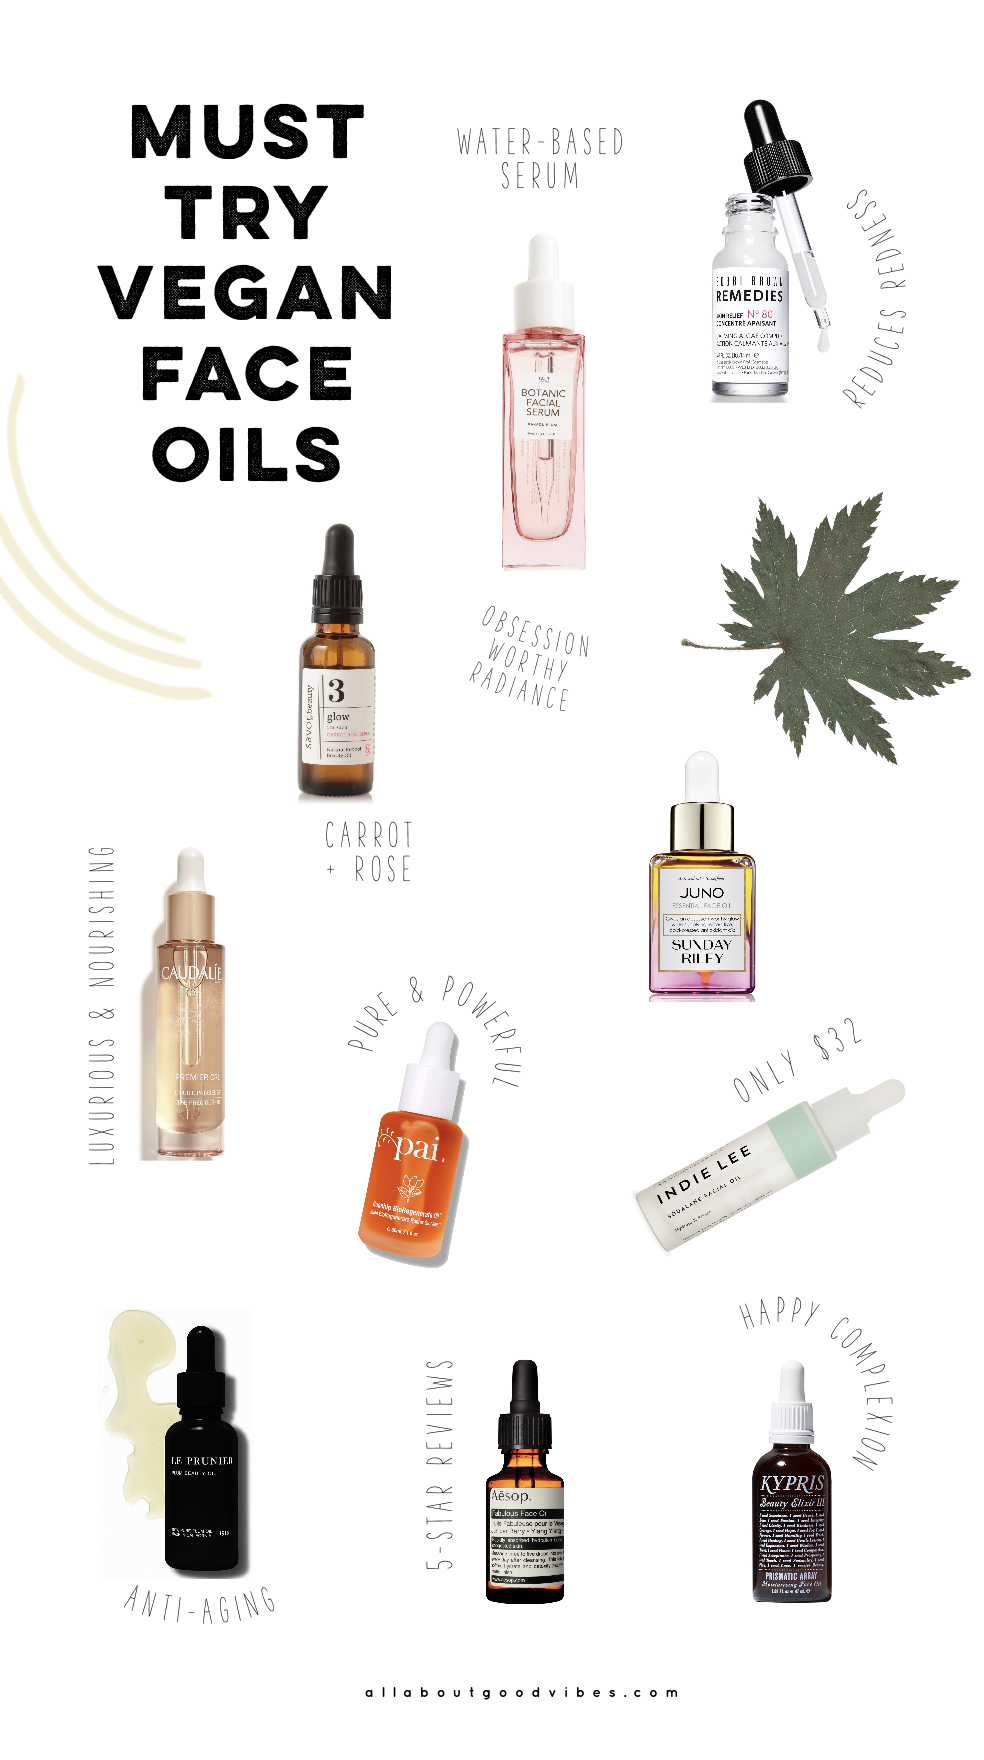 Must-Try-Vegan-Face-Oil-allaboutgoodvibes.com-Molly-Larsen-IG-@thevibescloset-Beauty-Style-Blogger